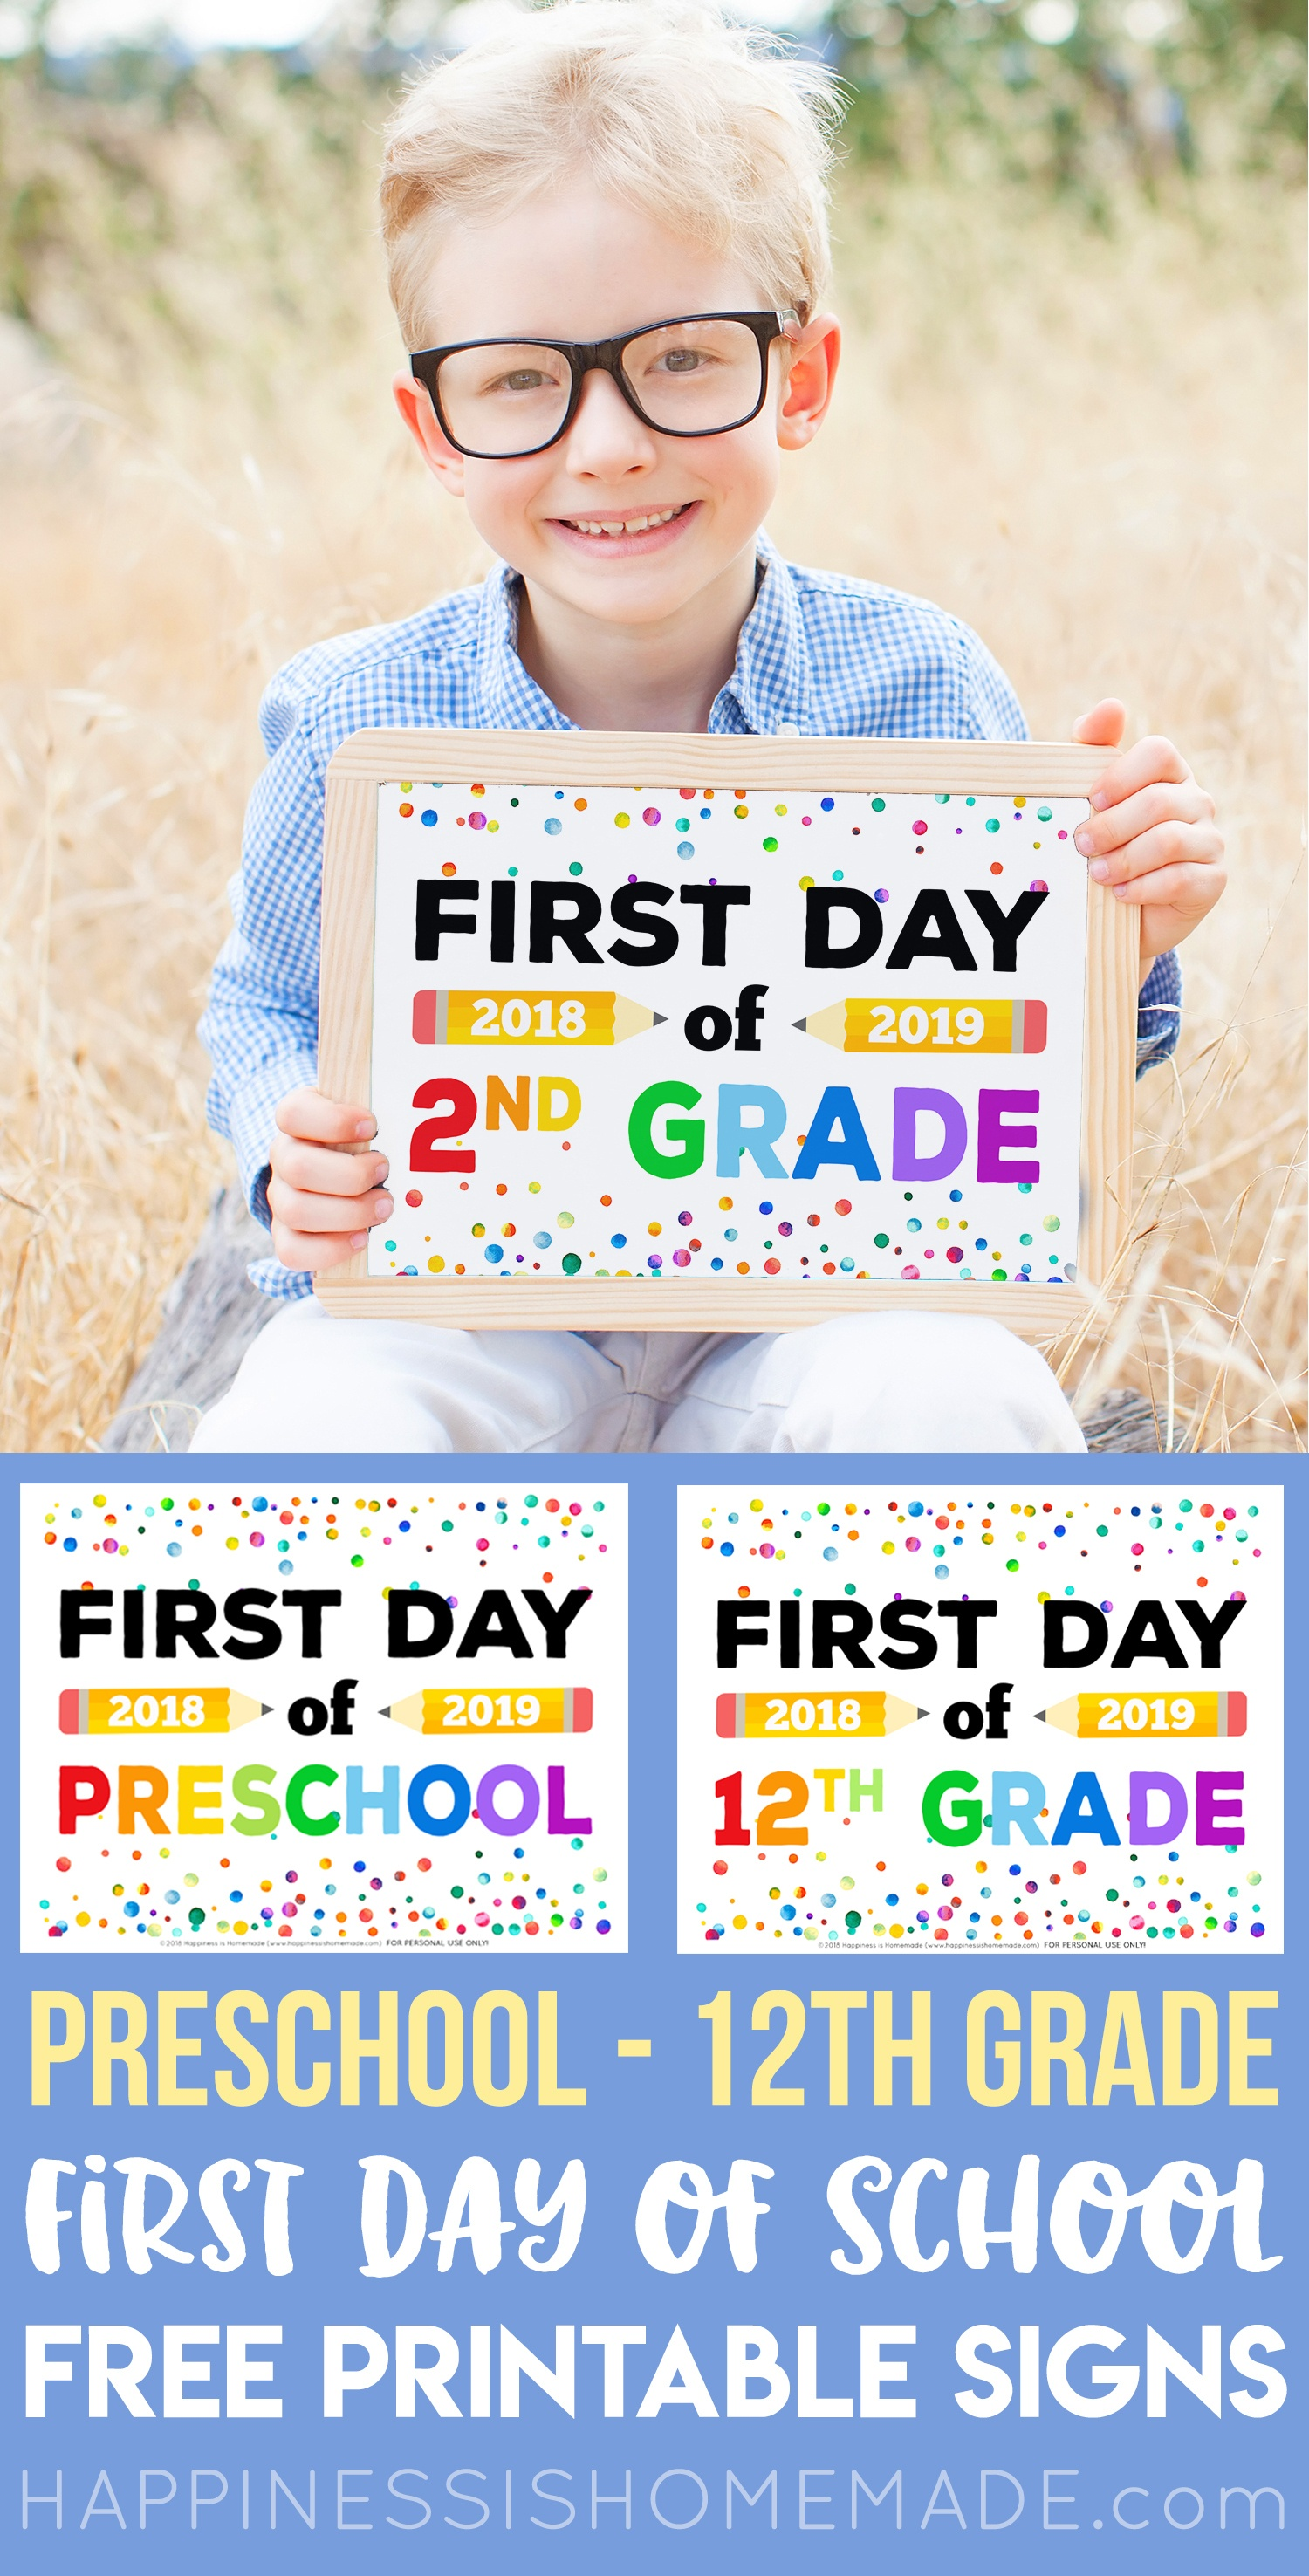 First Day Of School Signs - Free Printables - Happiness Is Homemade - Free First Day Of School Printables